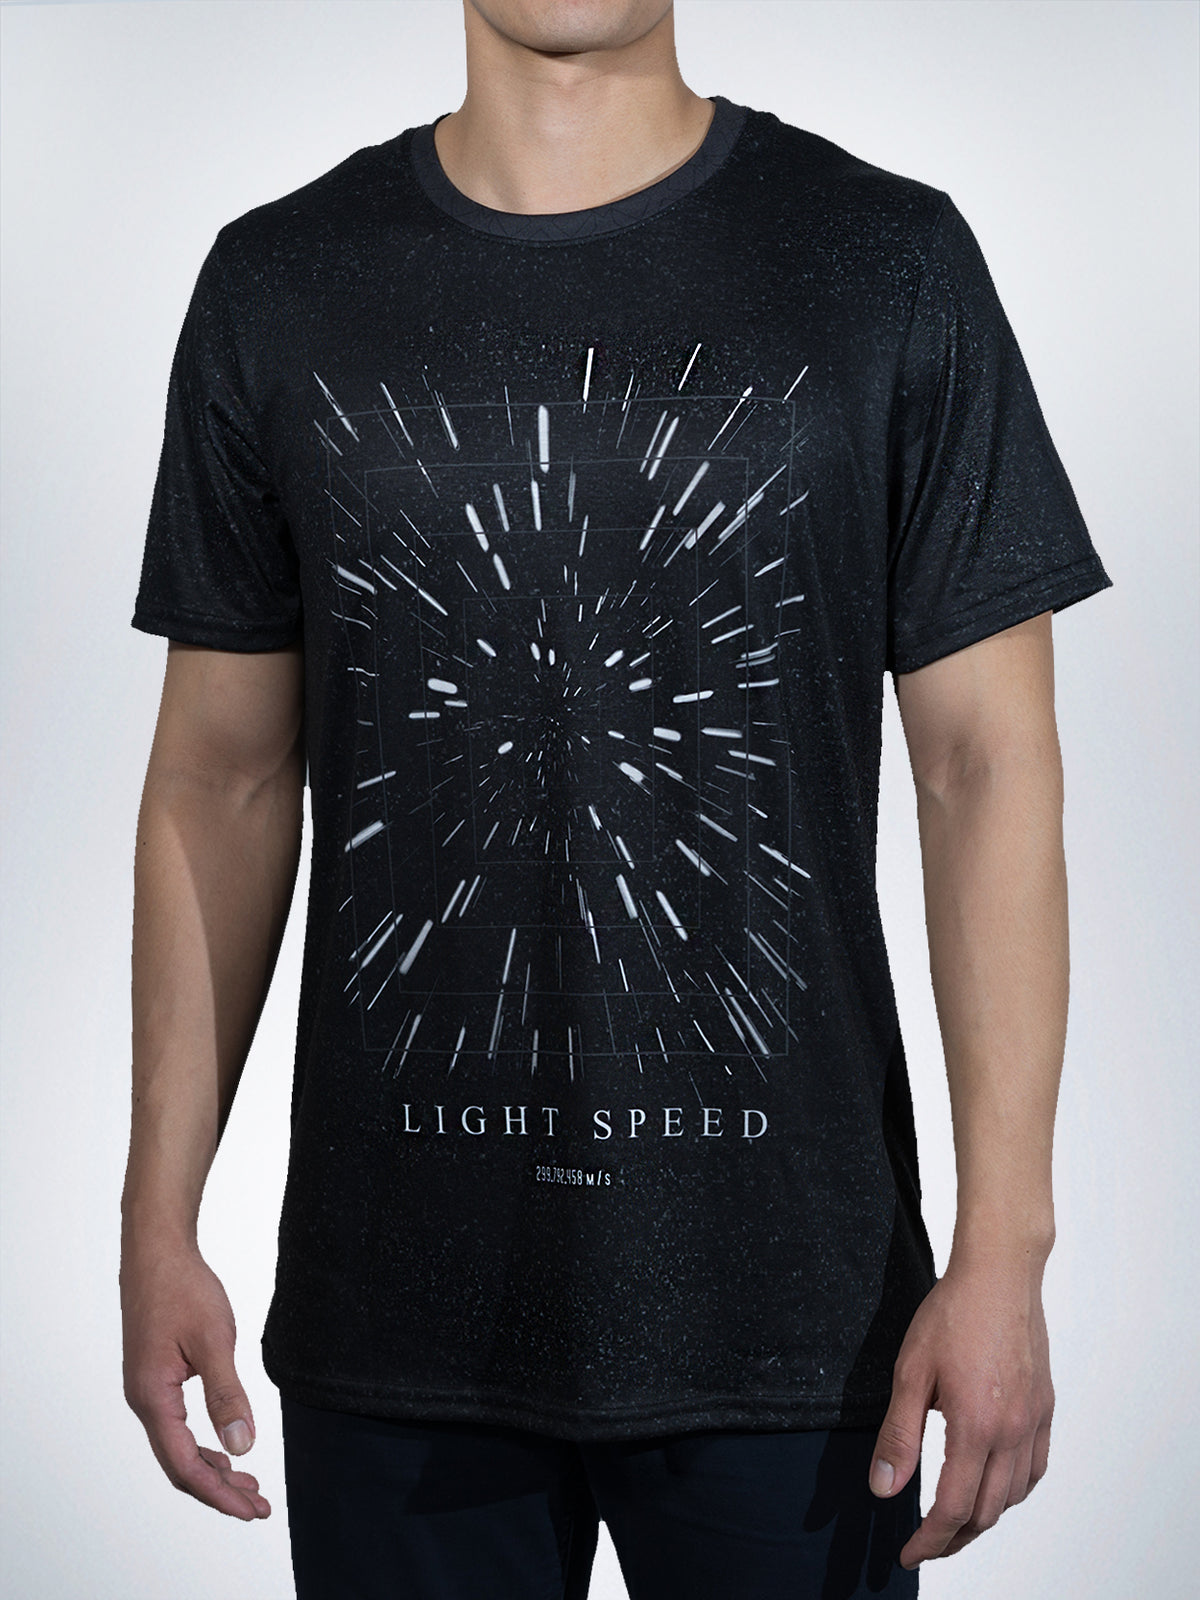 Light Speed Xclusive mens Tees shirts tops galaxy space stars wars hyper